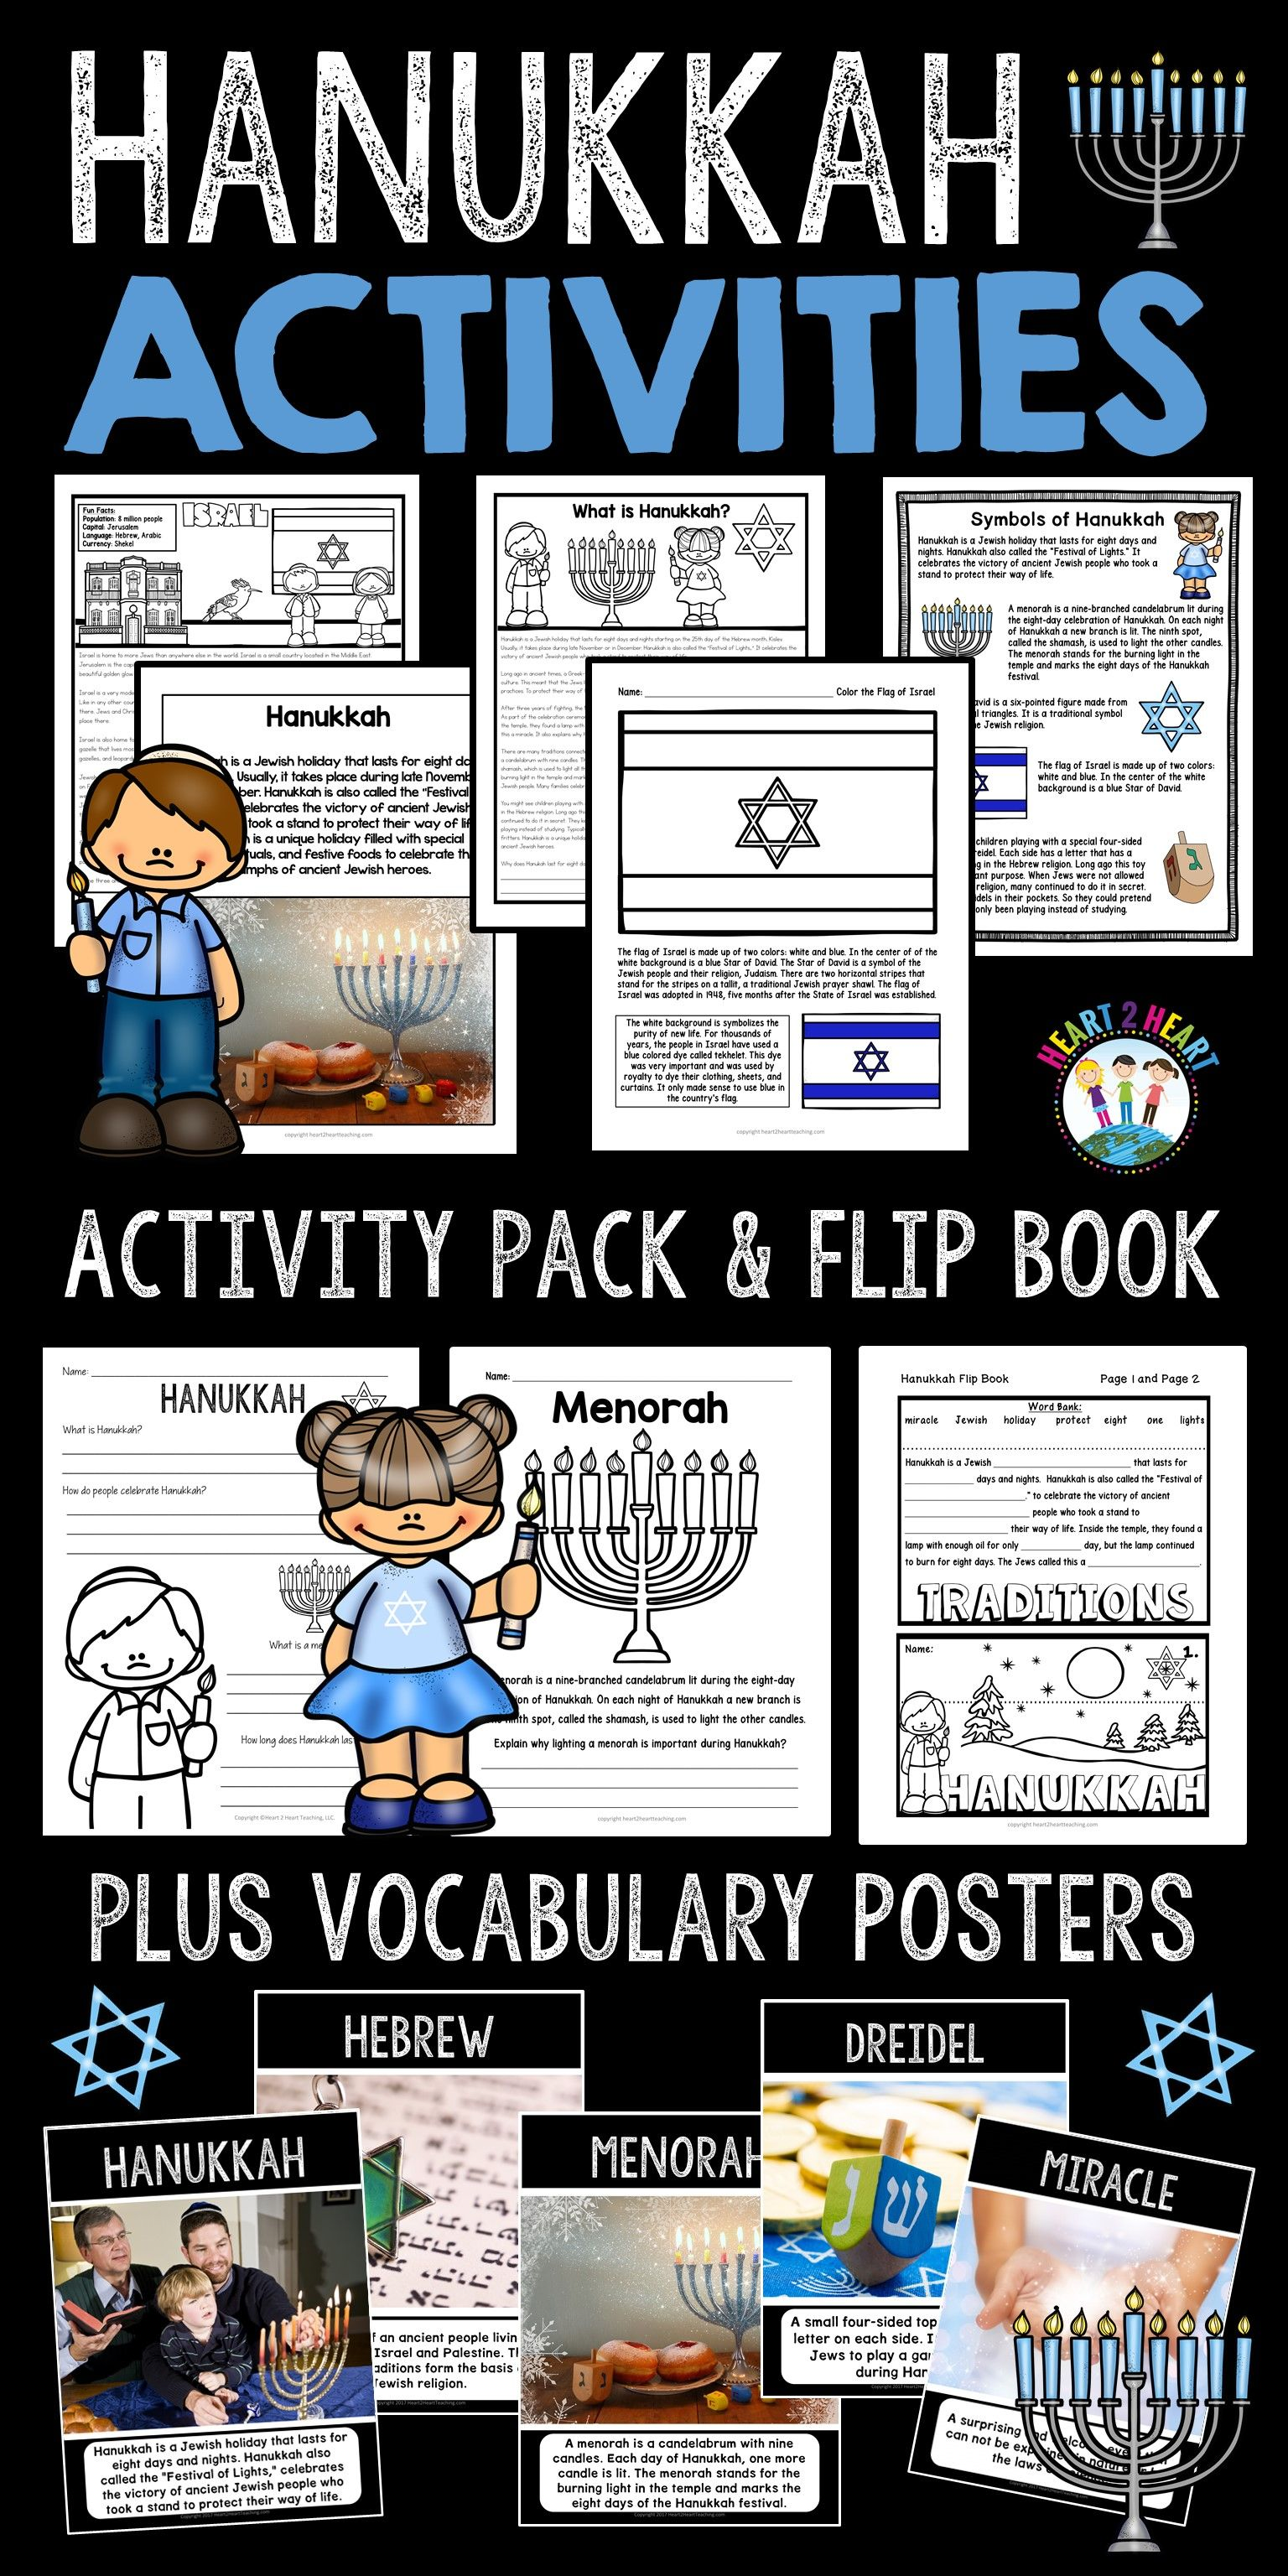 Hanukkah Activity Pack With Articles Activities Amp Flip Book